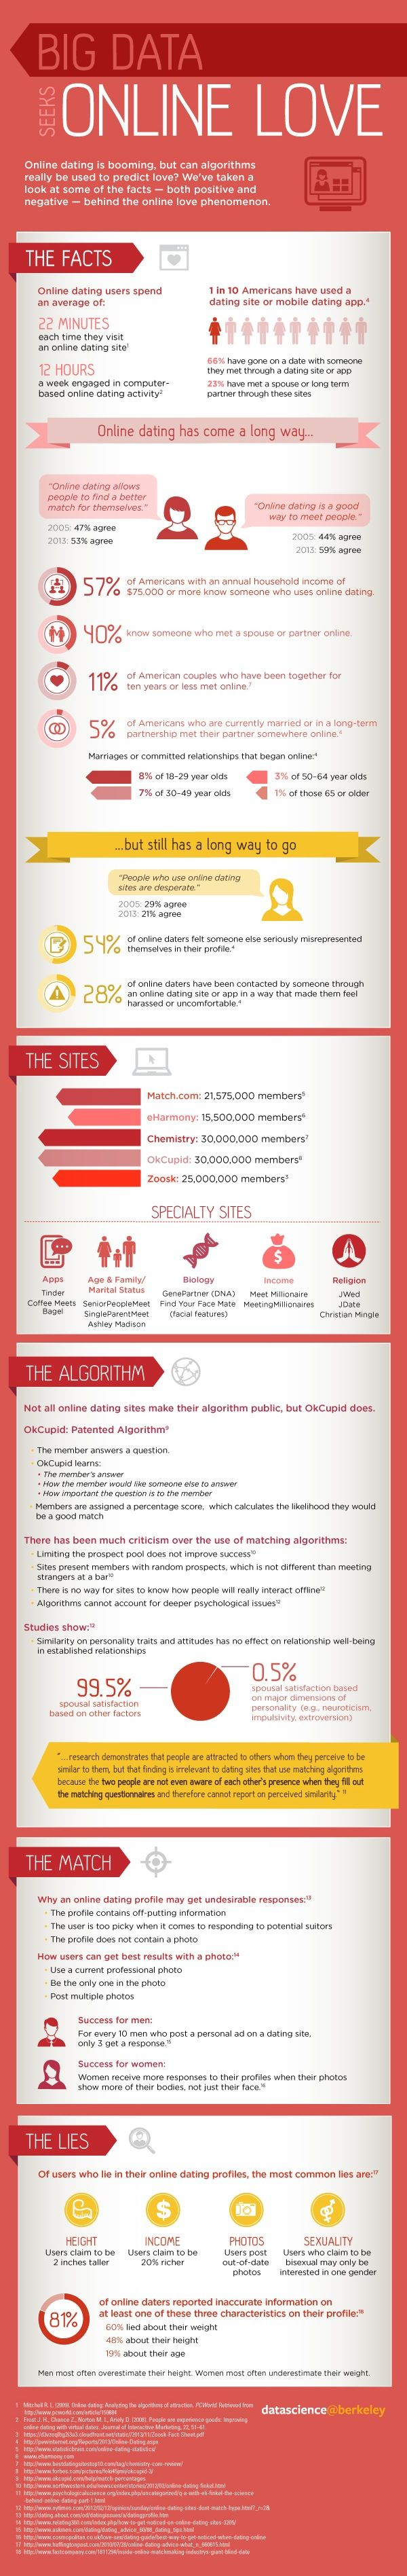 How Do You Find Your True Love Using Big Data? #bigdata #infographic